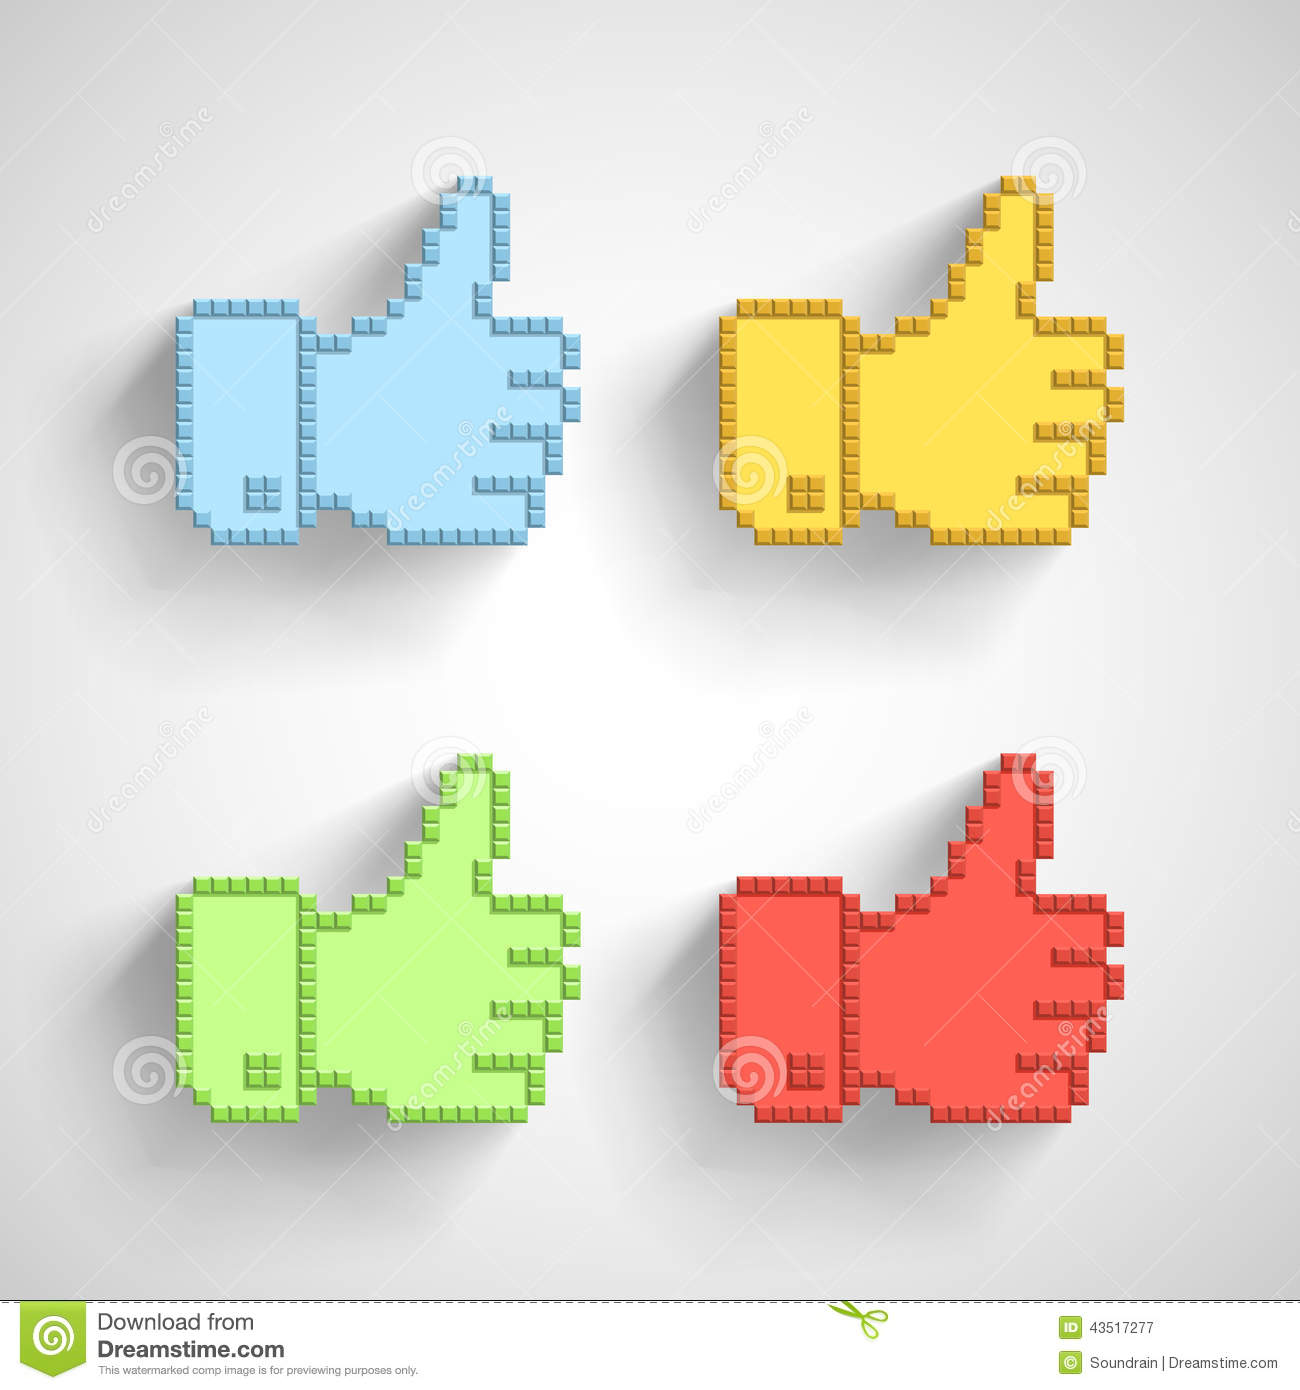 Thumb Up Icon In Pixel Art Stock Vector Illustration Of